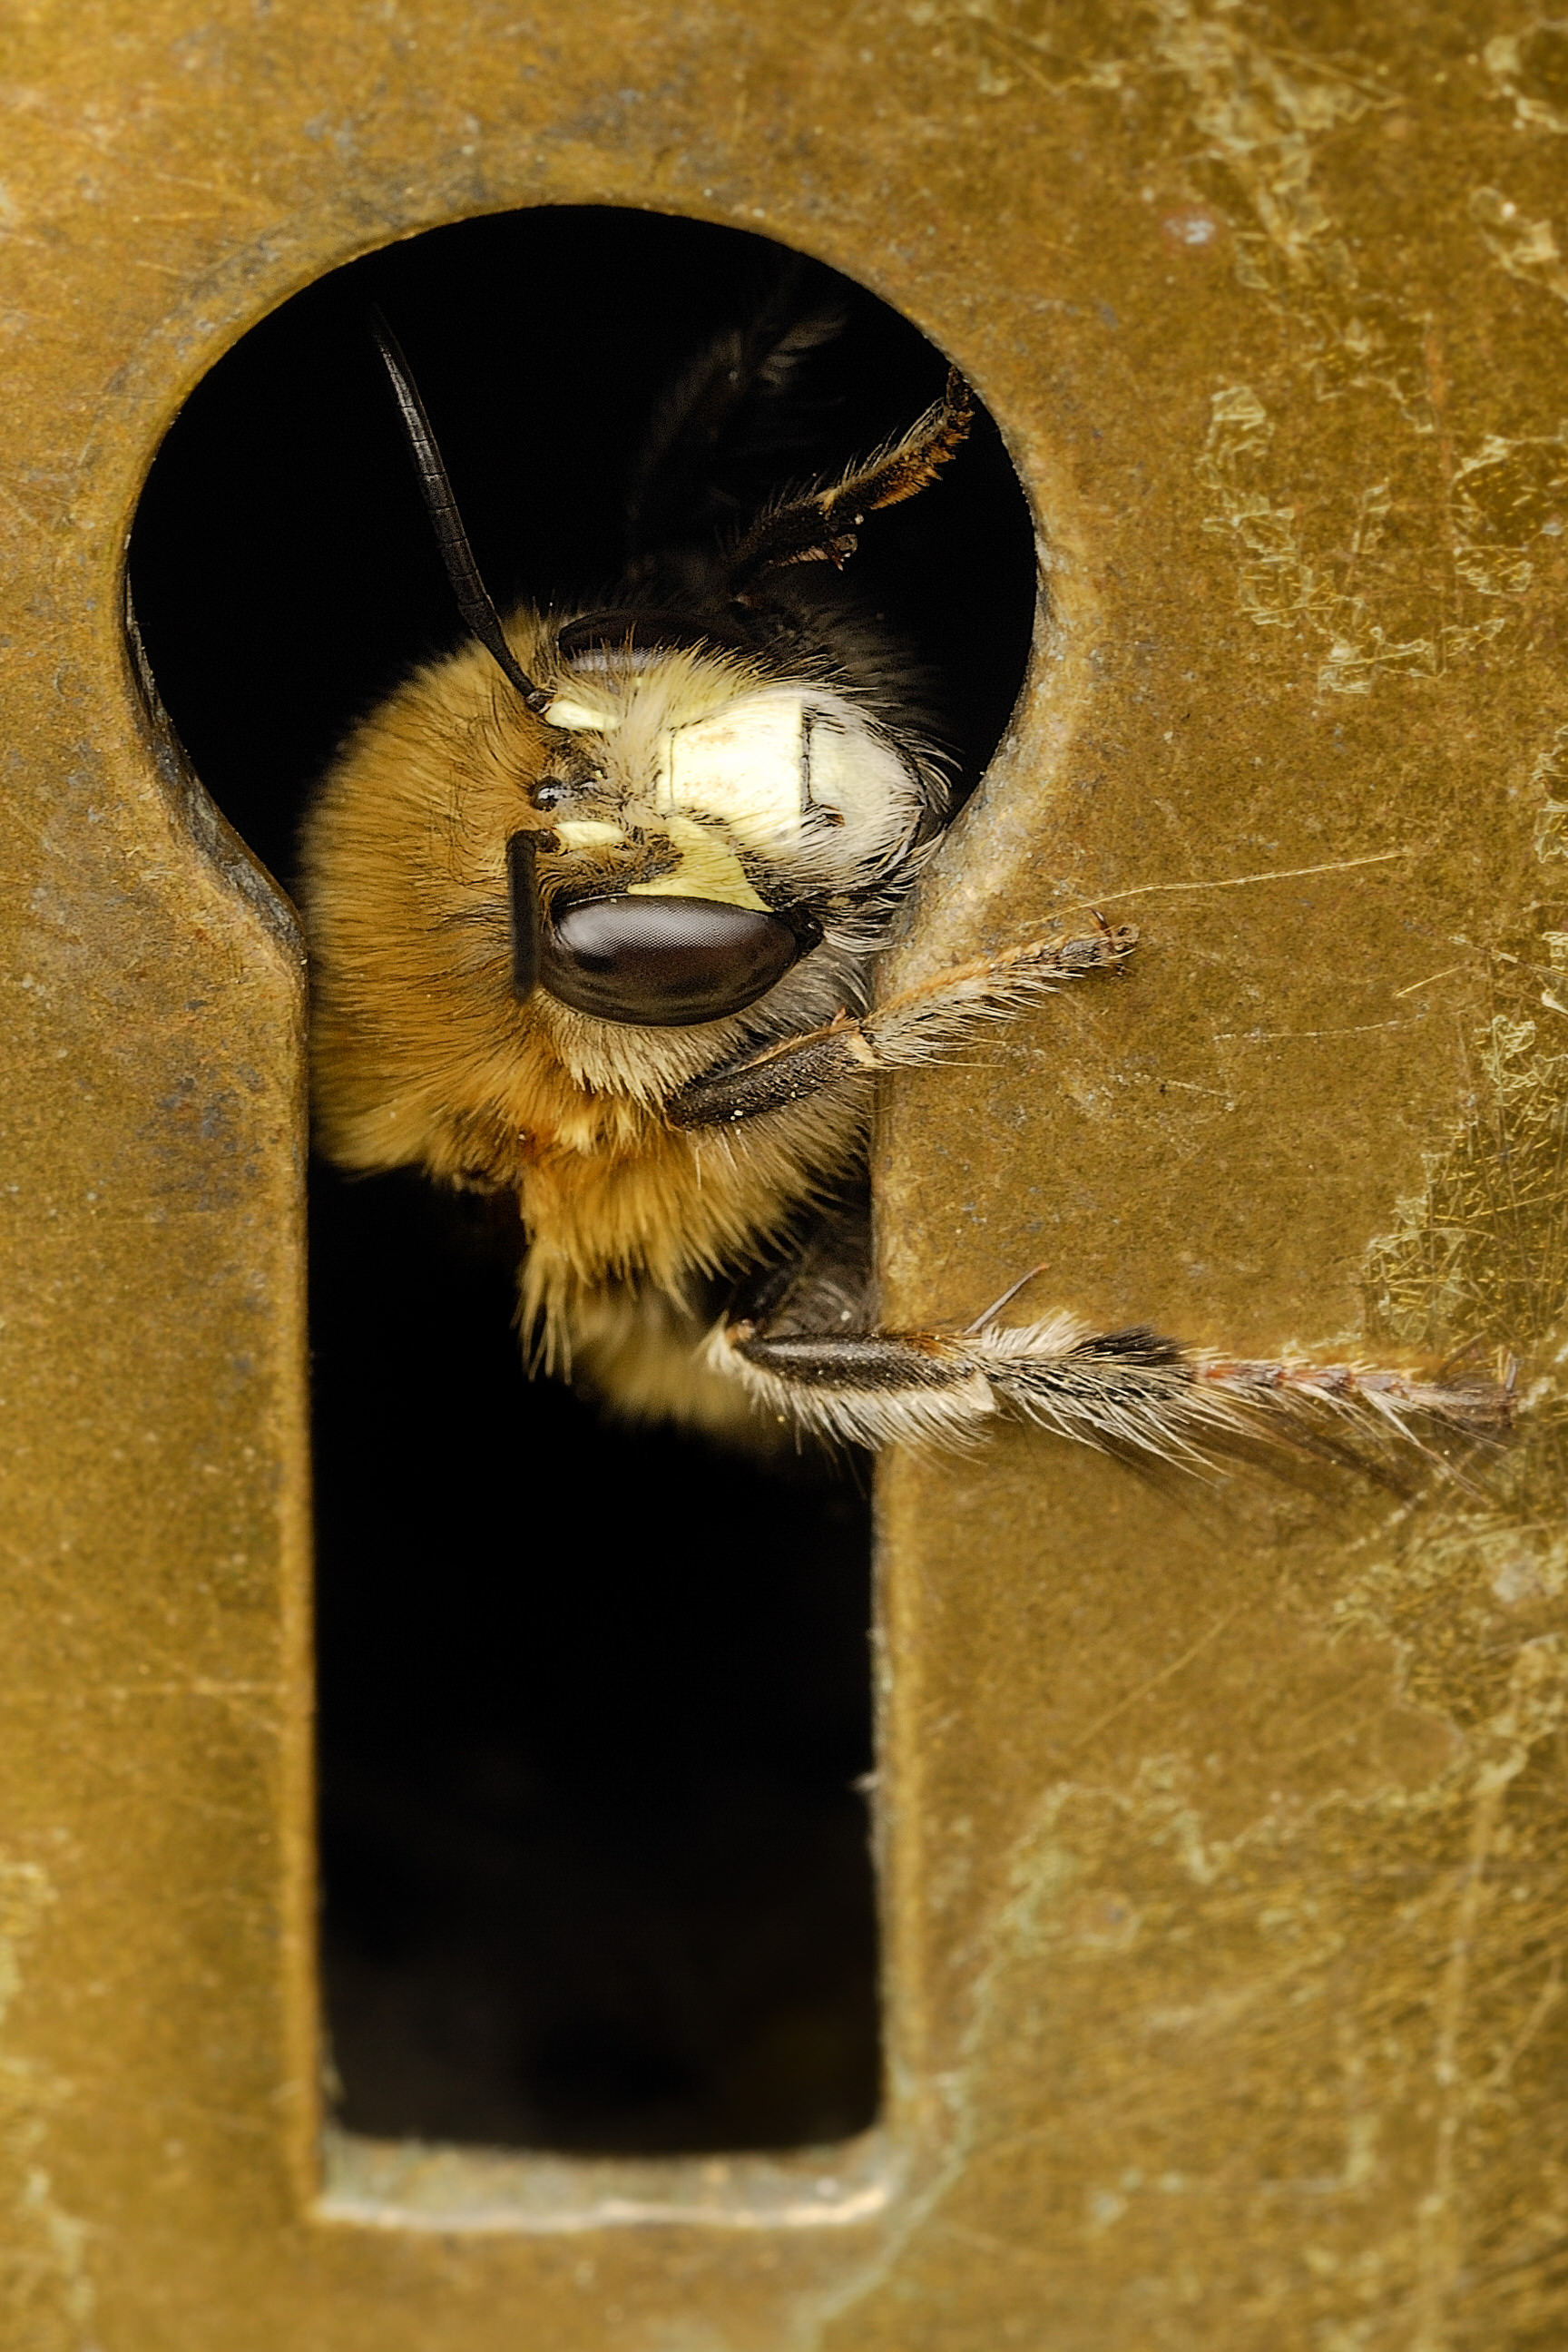 Hairy-footed flower bee, Anthophora plumipes, looking through the keyhole